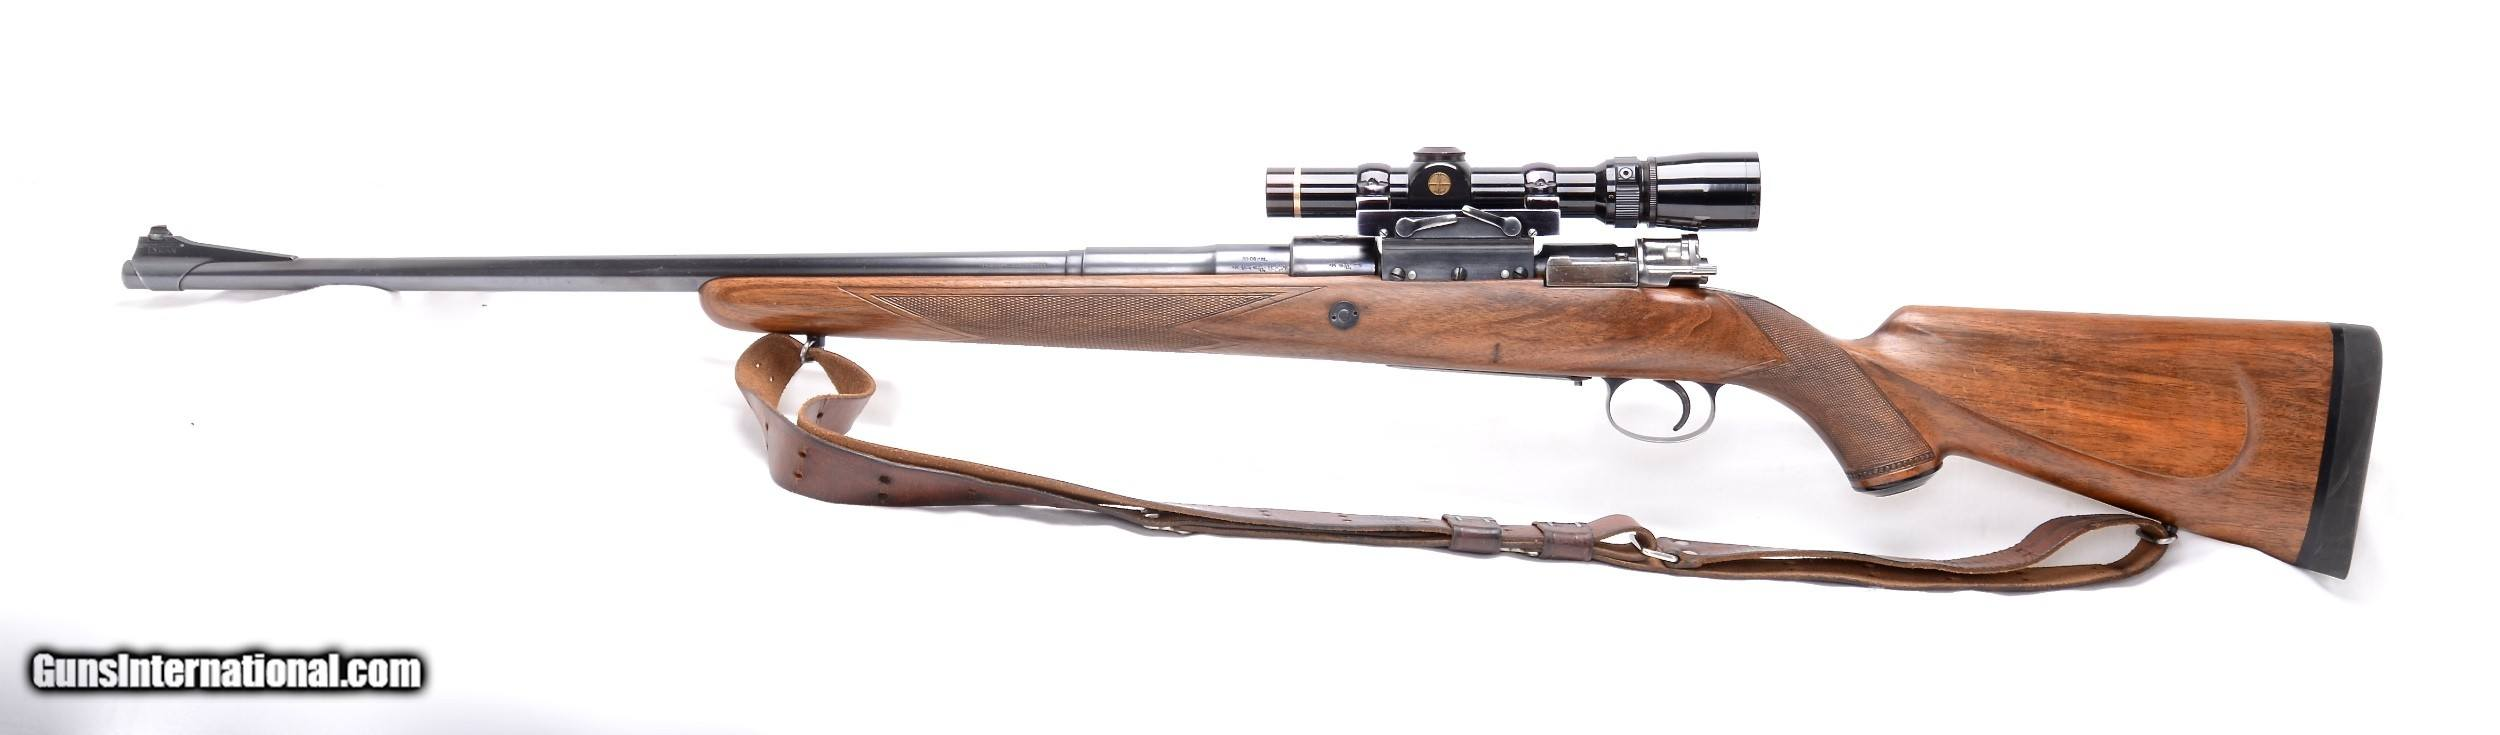 FN bolt action sporting rifle  30-06